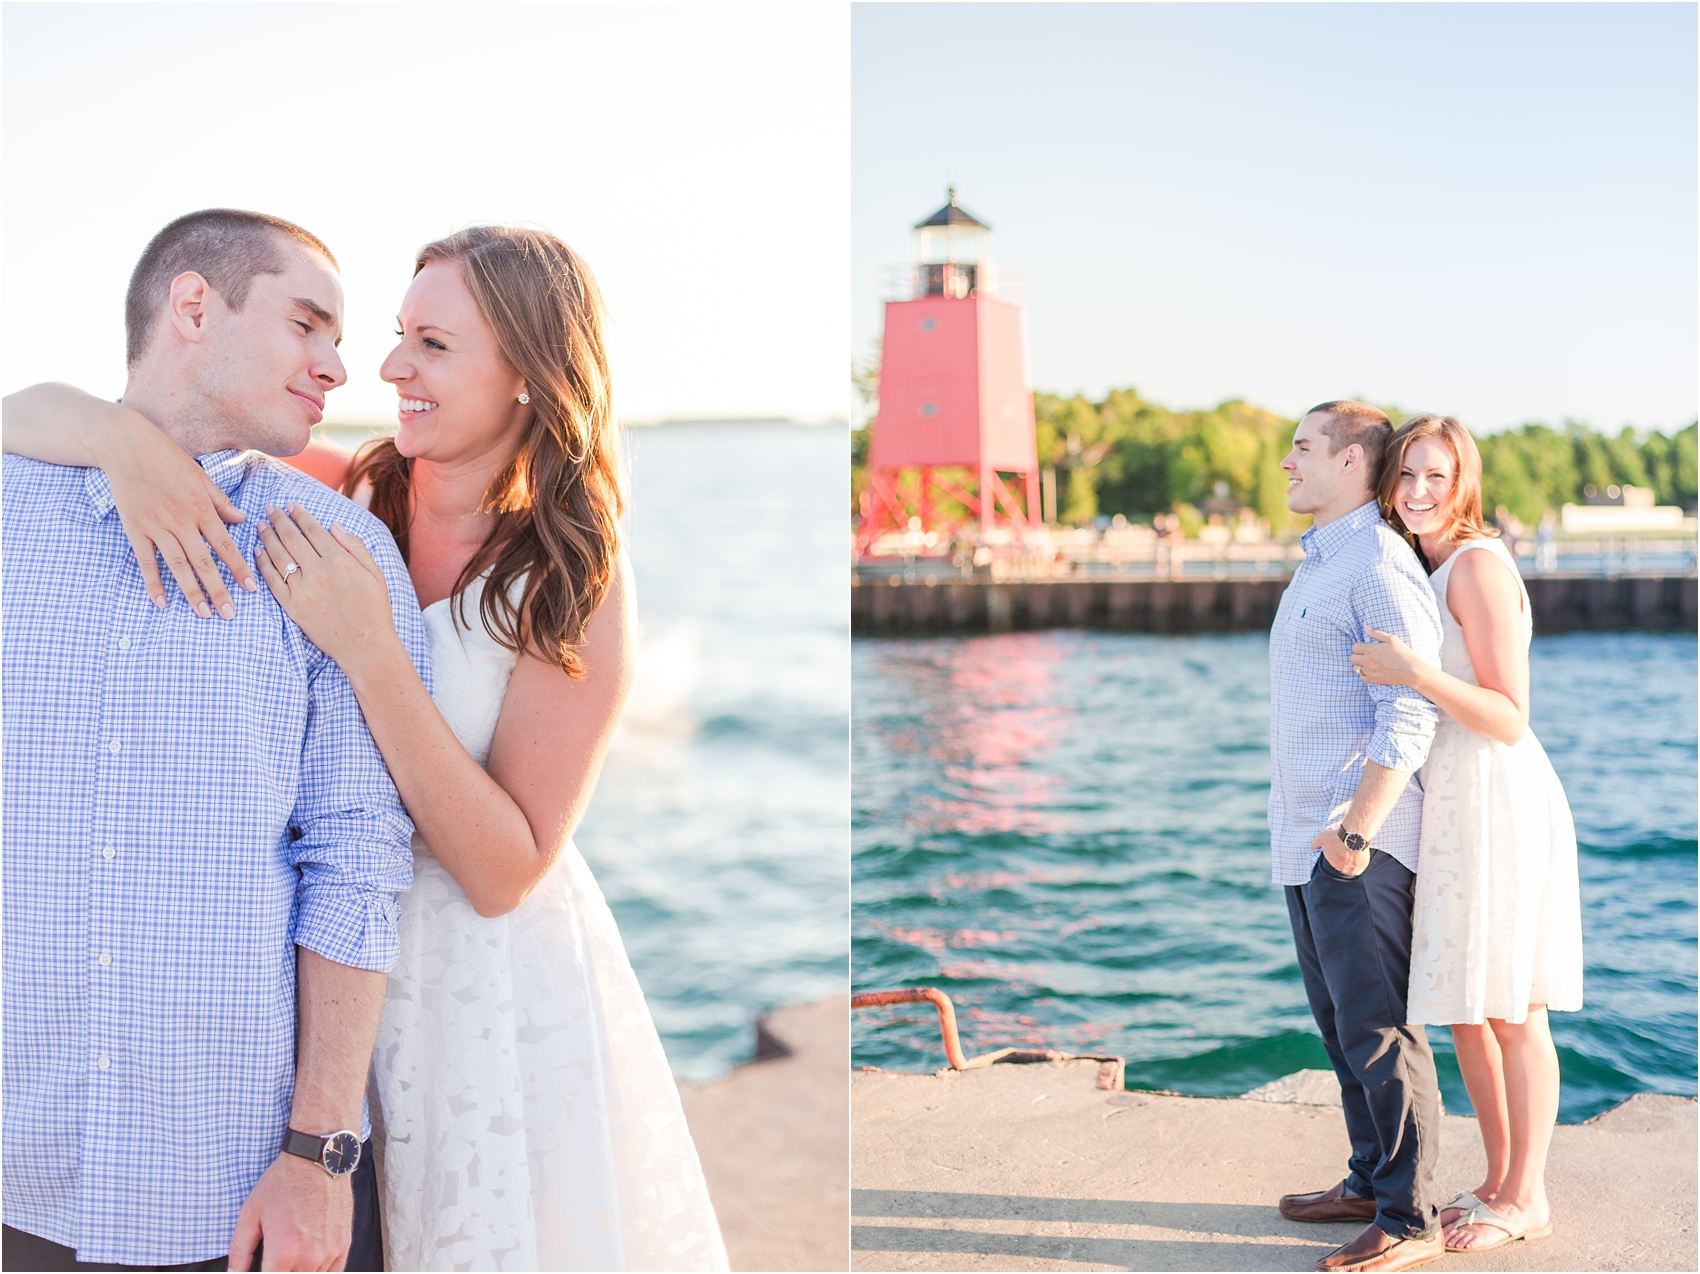 romantic-sunset-engagement-photos-at-the-lighthouse-in-charlevoix-mi-by-courtney-carolyn-photography_0010.jpg